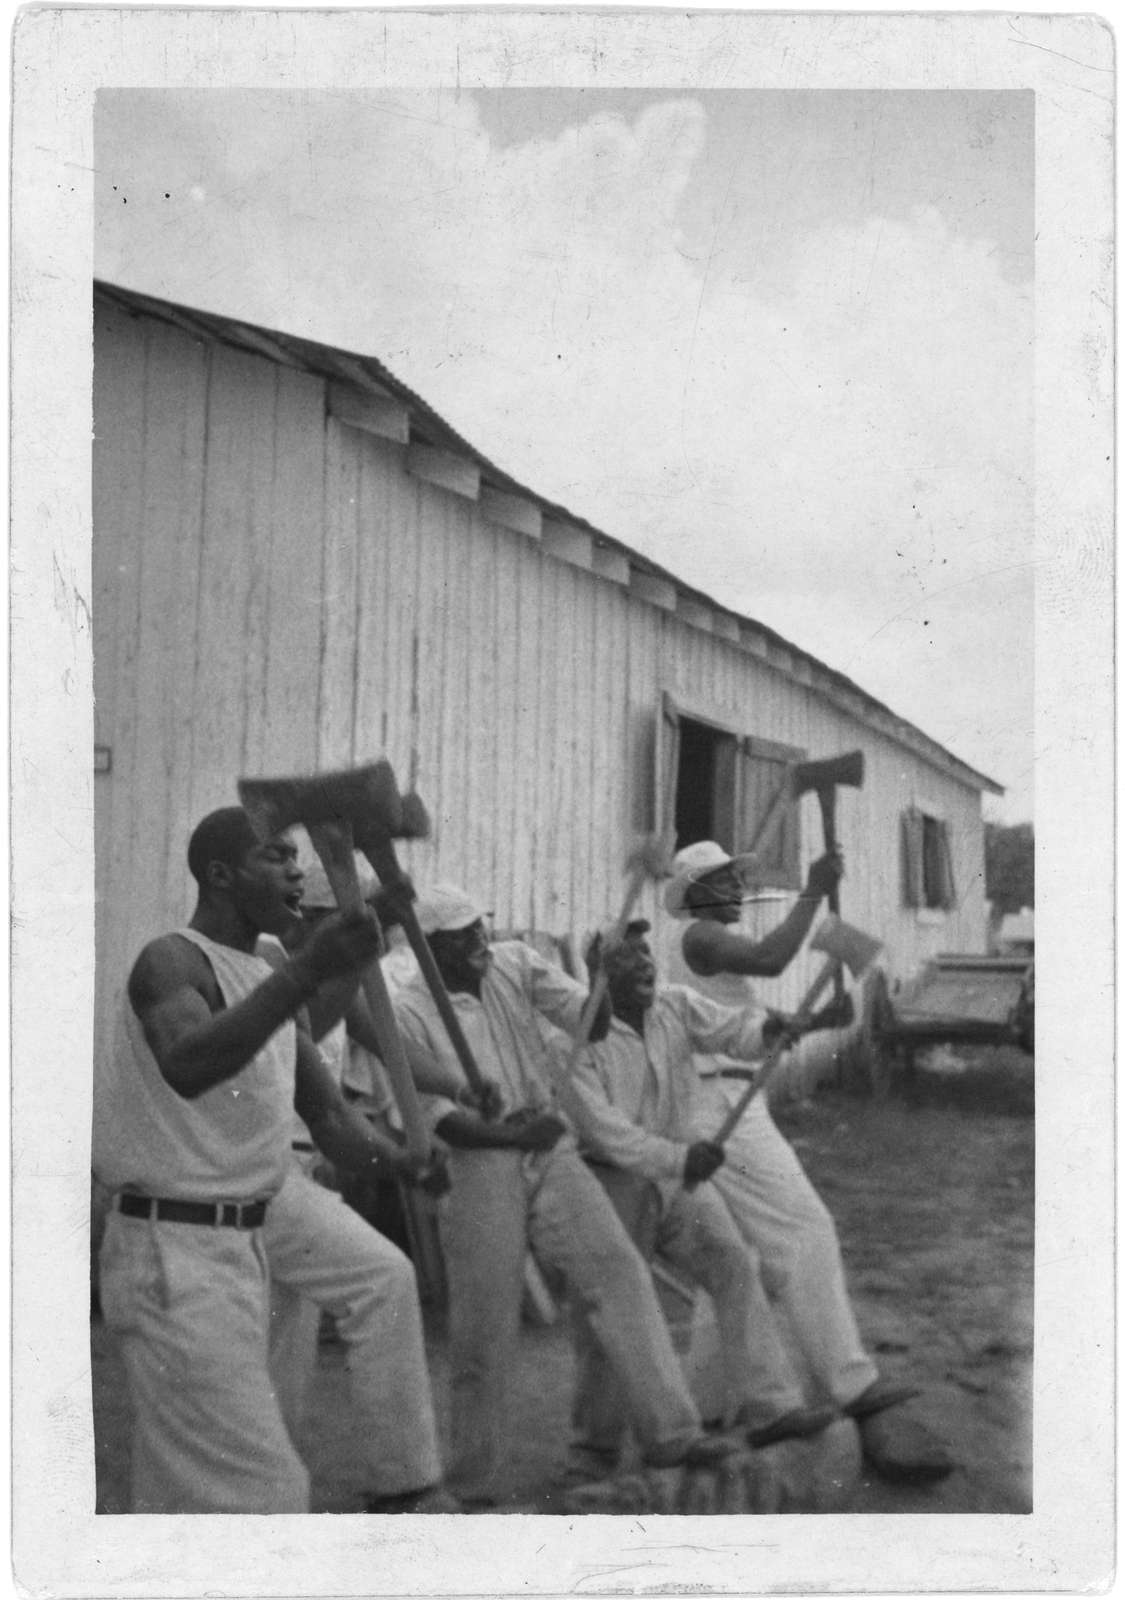 """[""""Lightnin'"""" Washington, an African American prisoner, singing with his group in the woodyard at Darrington State Farm, Texas]"""